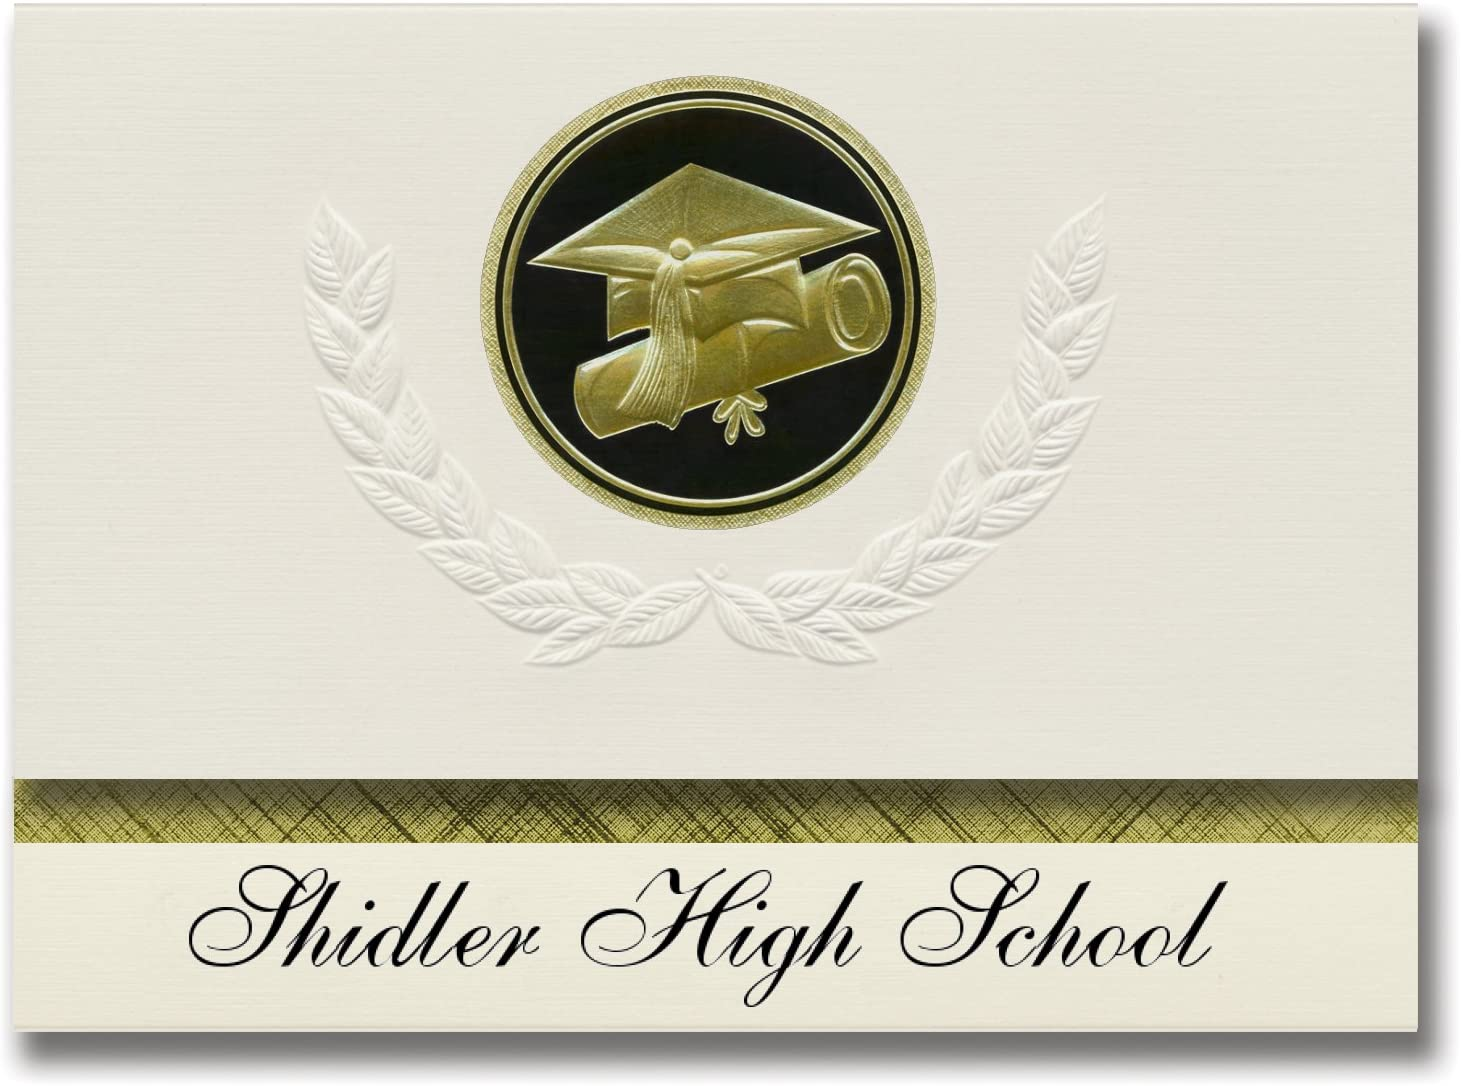 Signature Announcements Shidler High School (Shidler, OK) Graduation Announcements, Presidential style, Elite package of 25 Cap & Diploma Seal Black & Gold